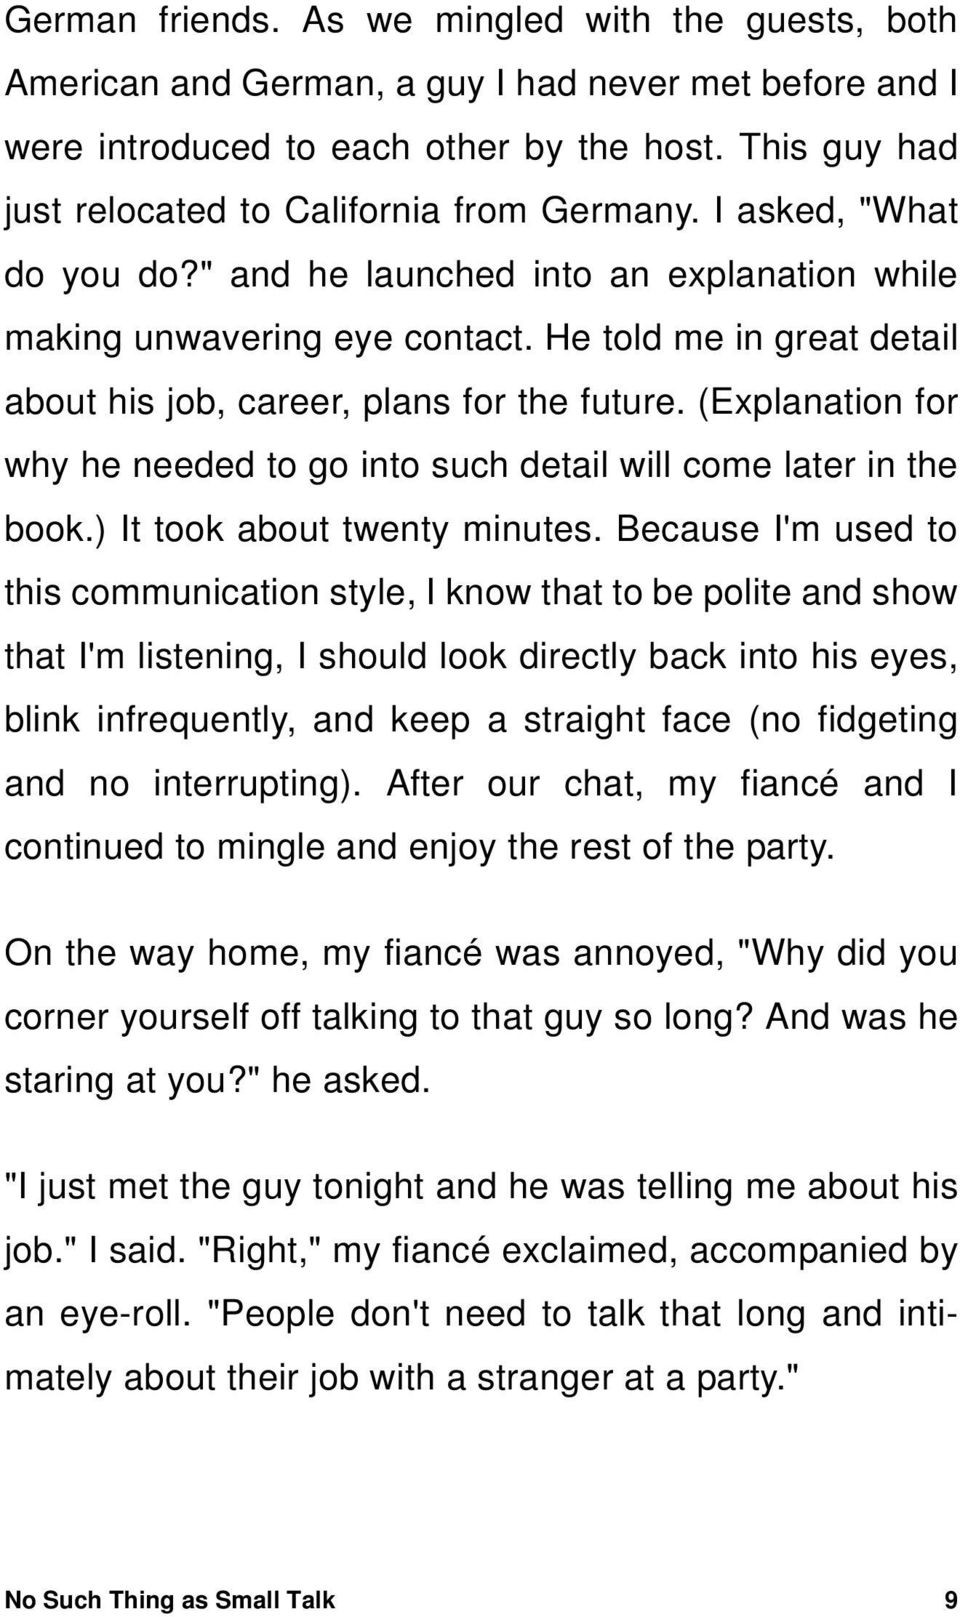 He told me in great detail about his job, career, plans for the future. (Explanation for why he needed to go into such detail will come later in the book.) It took about twenty minutes.